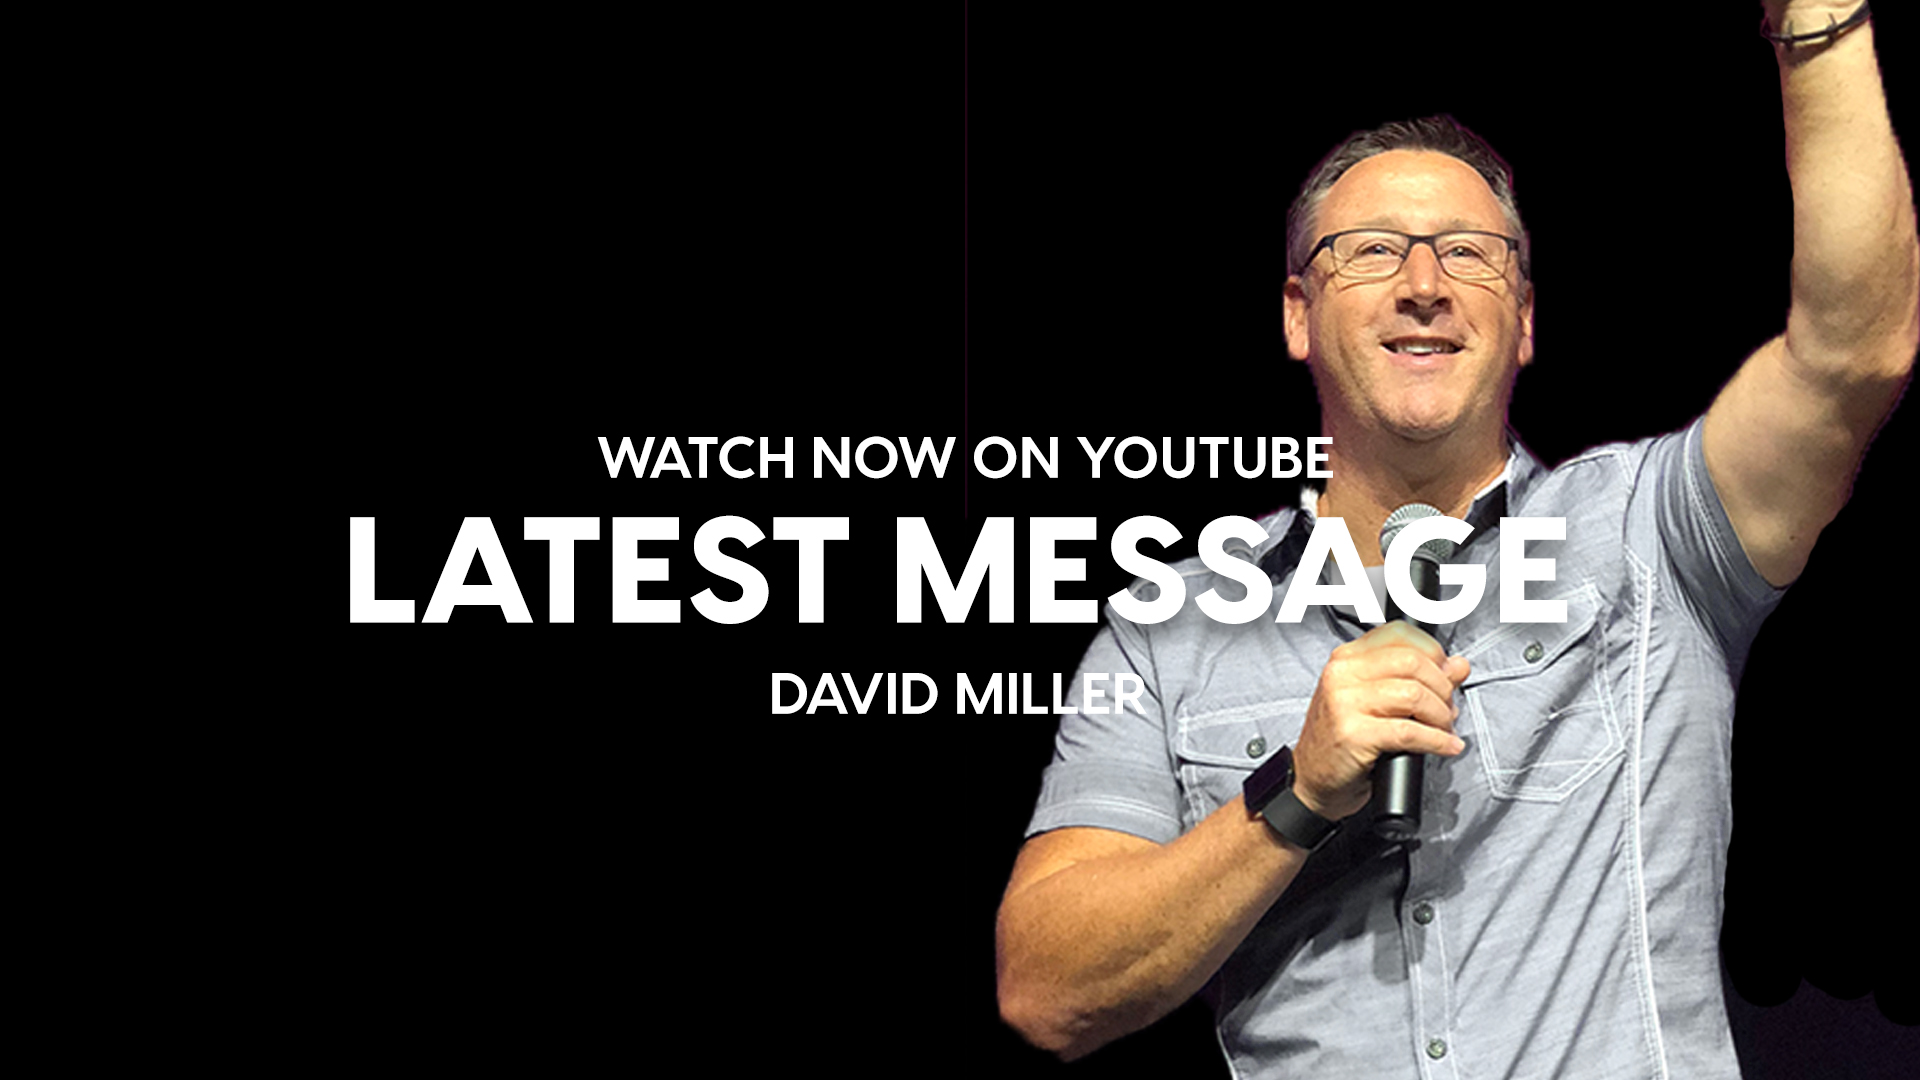 WATCH NOW - THE FELLOWSHIP YOUTUBE CHANNELCheck out the latest messages from Pastor David Miller! Access talks that give you insight into topics such as greatness, leadership, choice, risk, and living life to the fullest. Be empowered to create a future that cultivates faith, hope, and love!